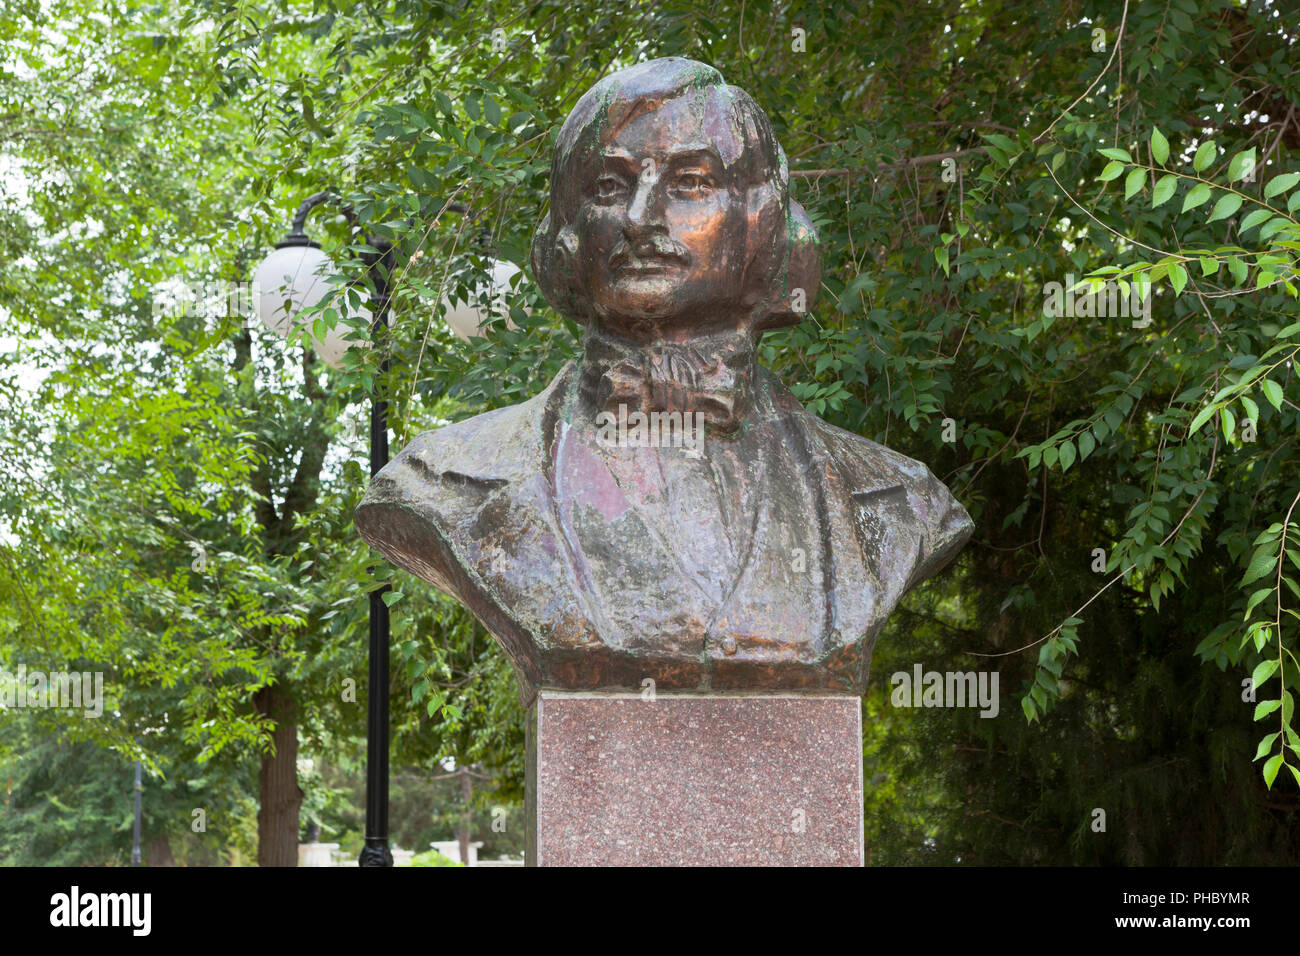 Evpatoria, Crimea, Russia - June 30, 2018: Bust to Nikolai Vasilyevich Gogol in the city of Evpatoria, Crimea - Stock Image